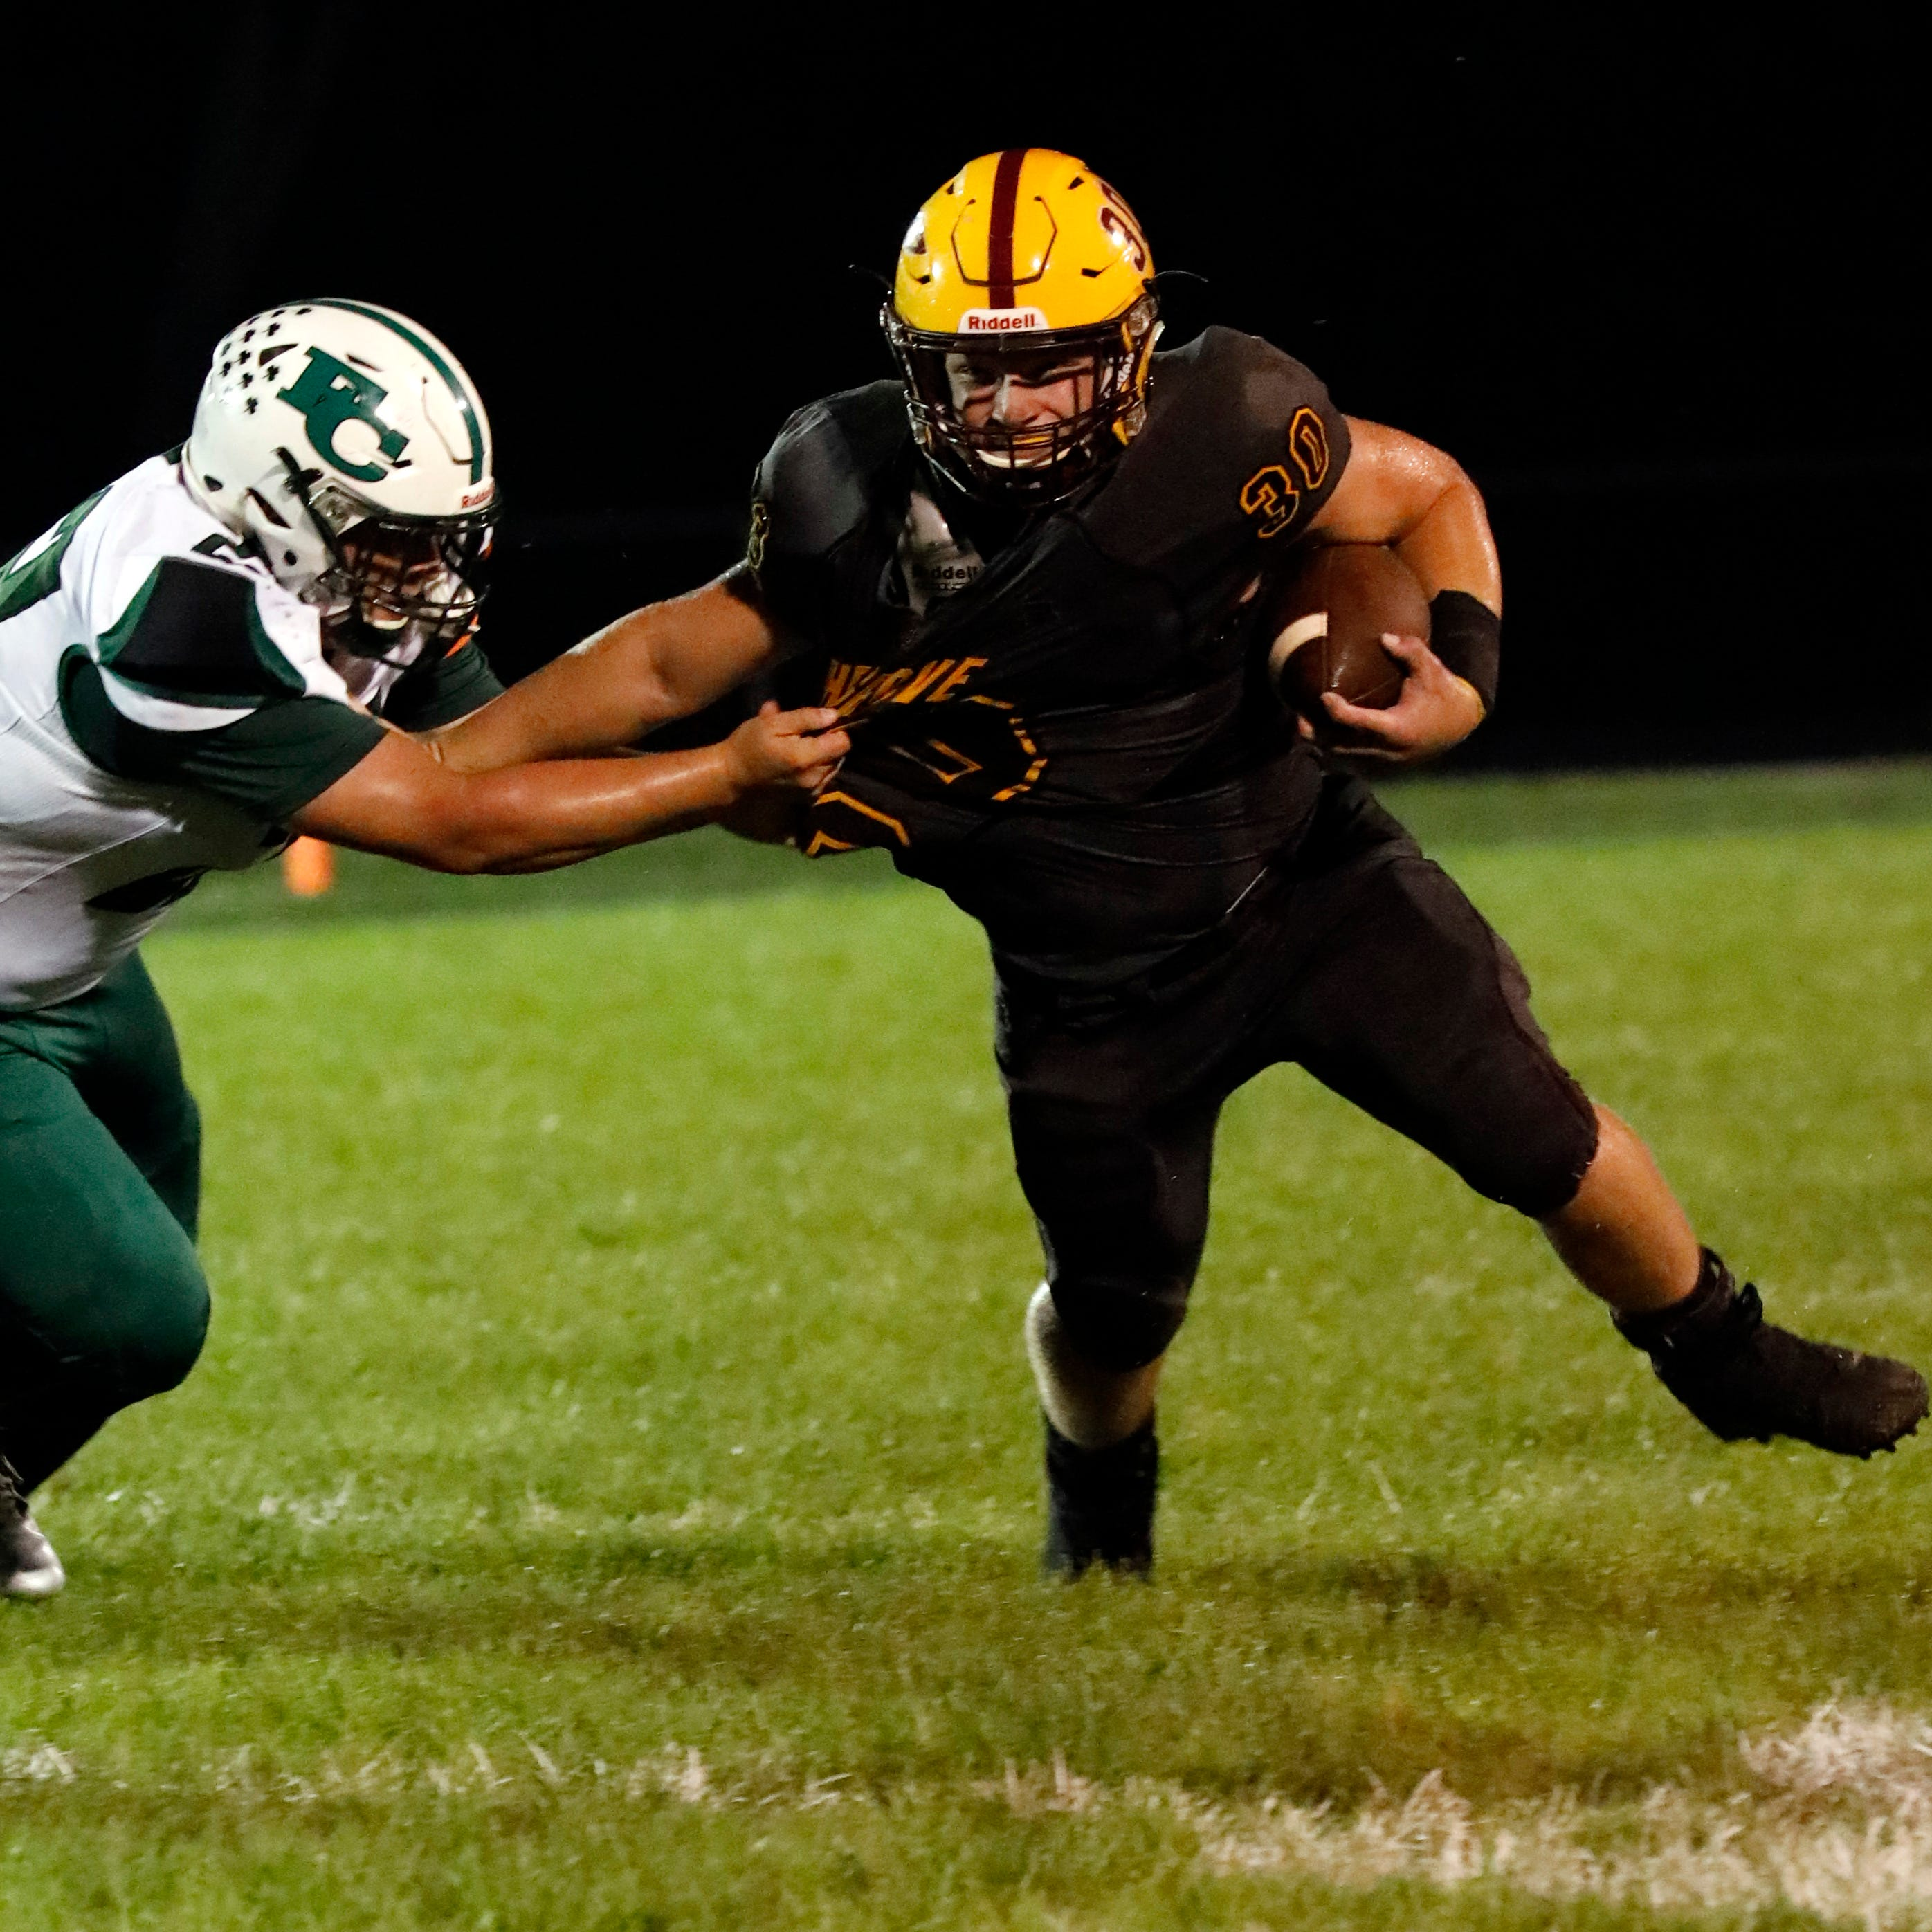 H.S. Football Roundup: Berne Union knocks off previously unbeaten Fisher Catholic